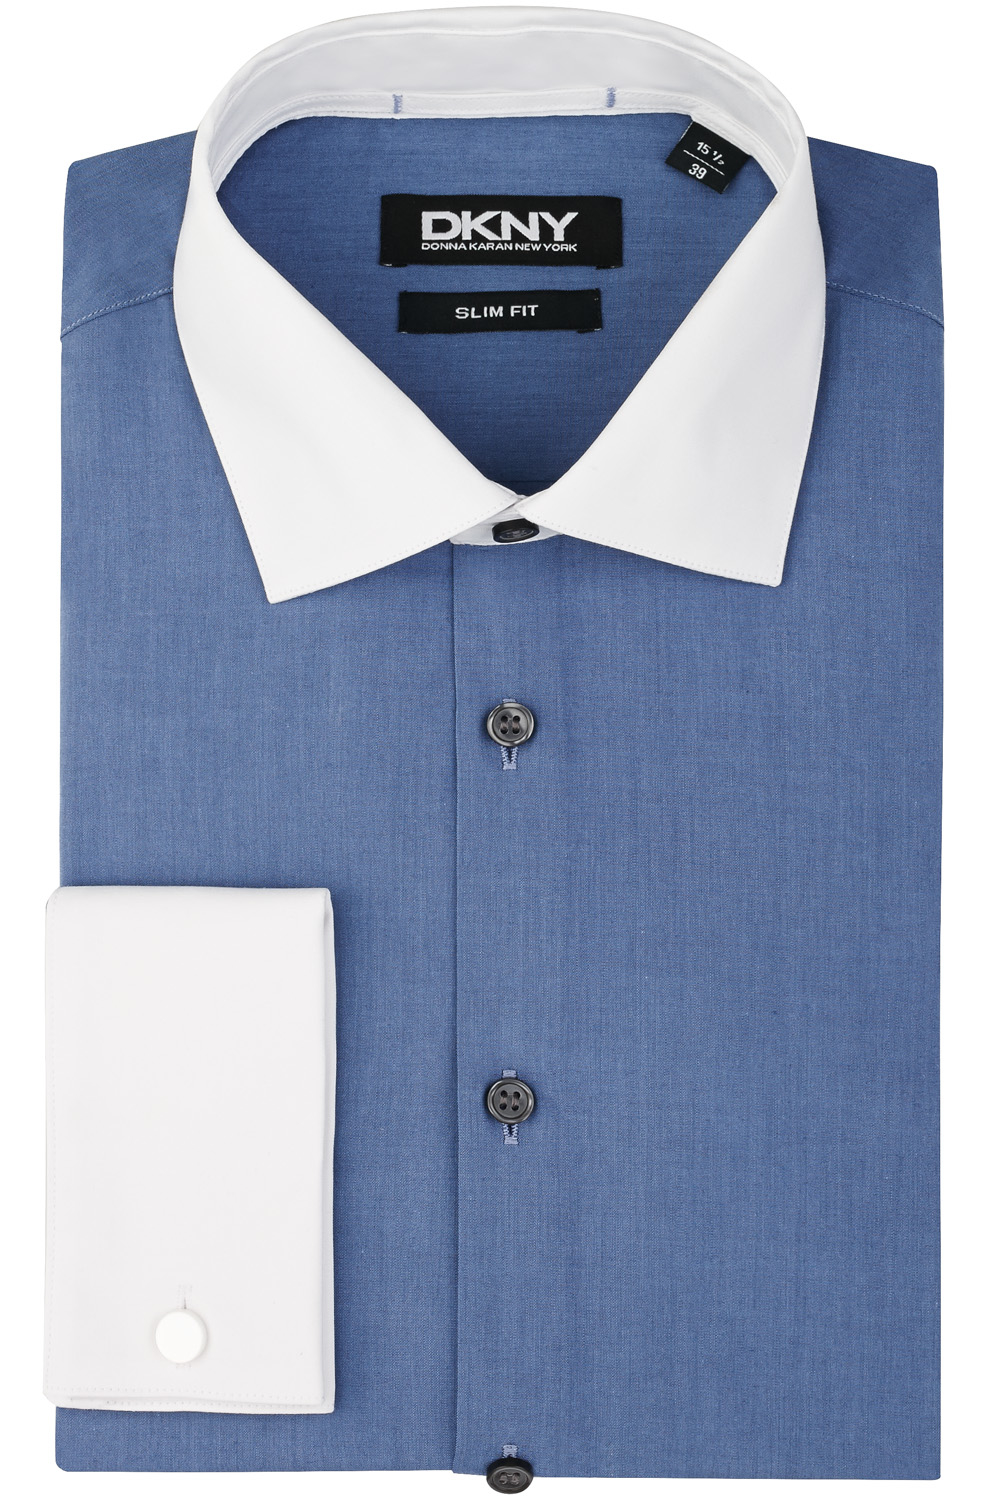 Dkny slim fit blue double cuff white contrast collar and for Mens dress shirts with contrasting collars and cuffs